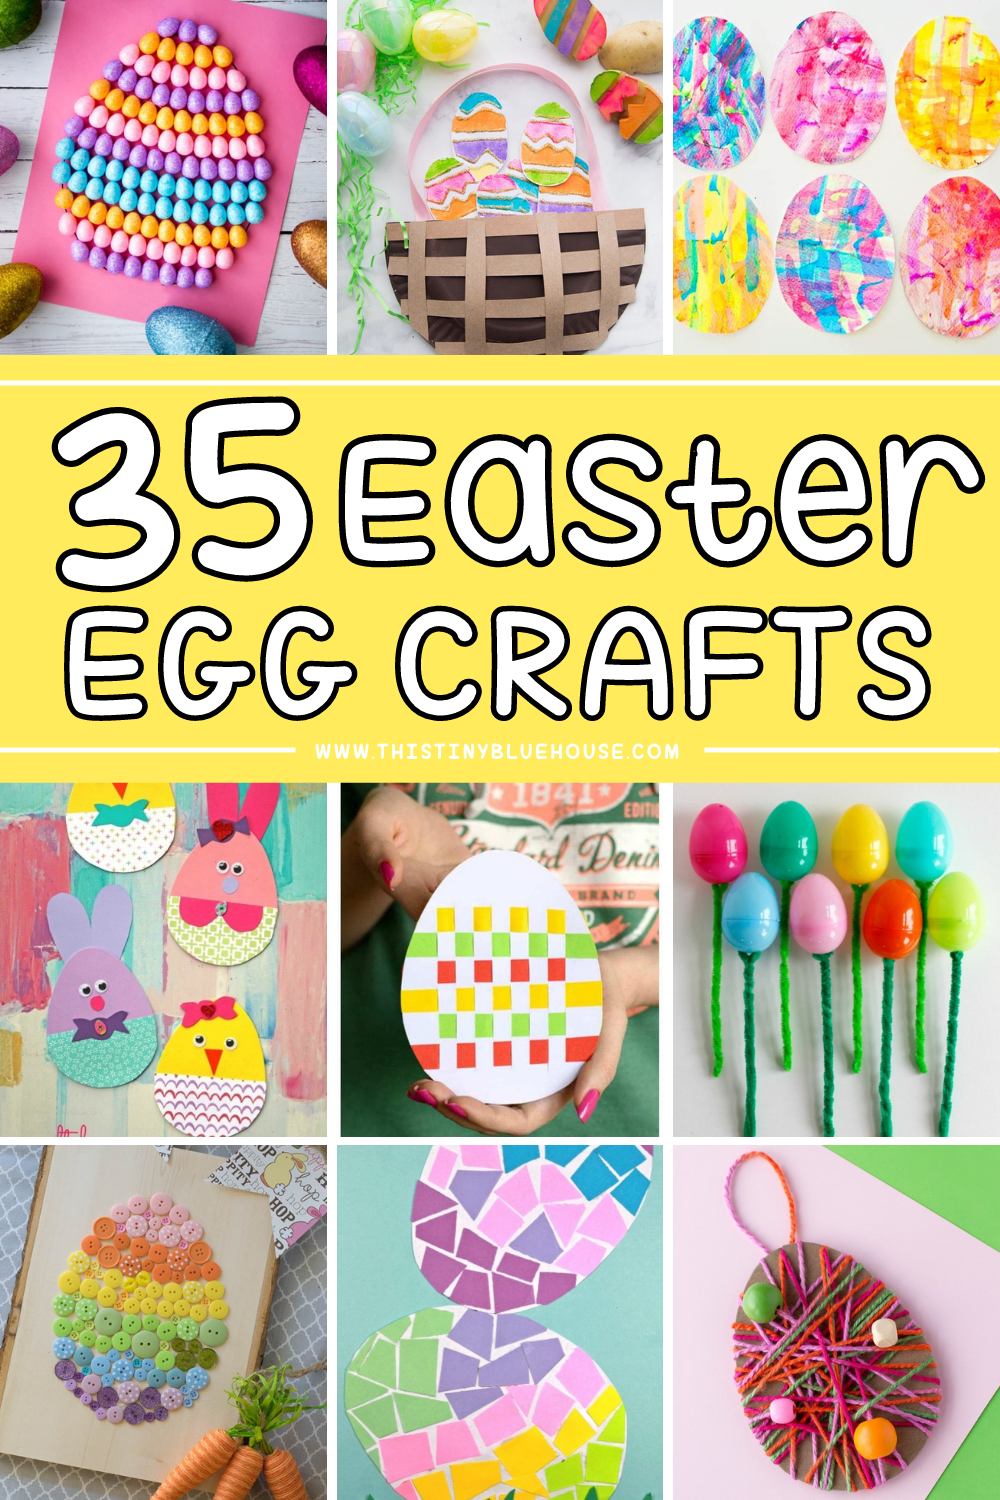 35 Fun & Easy Easter Egg Crafts For Kids